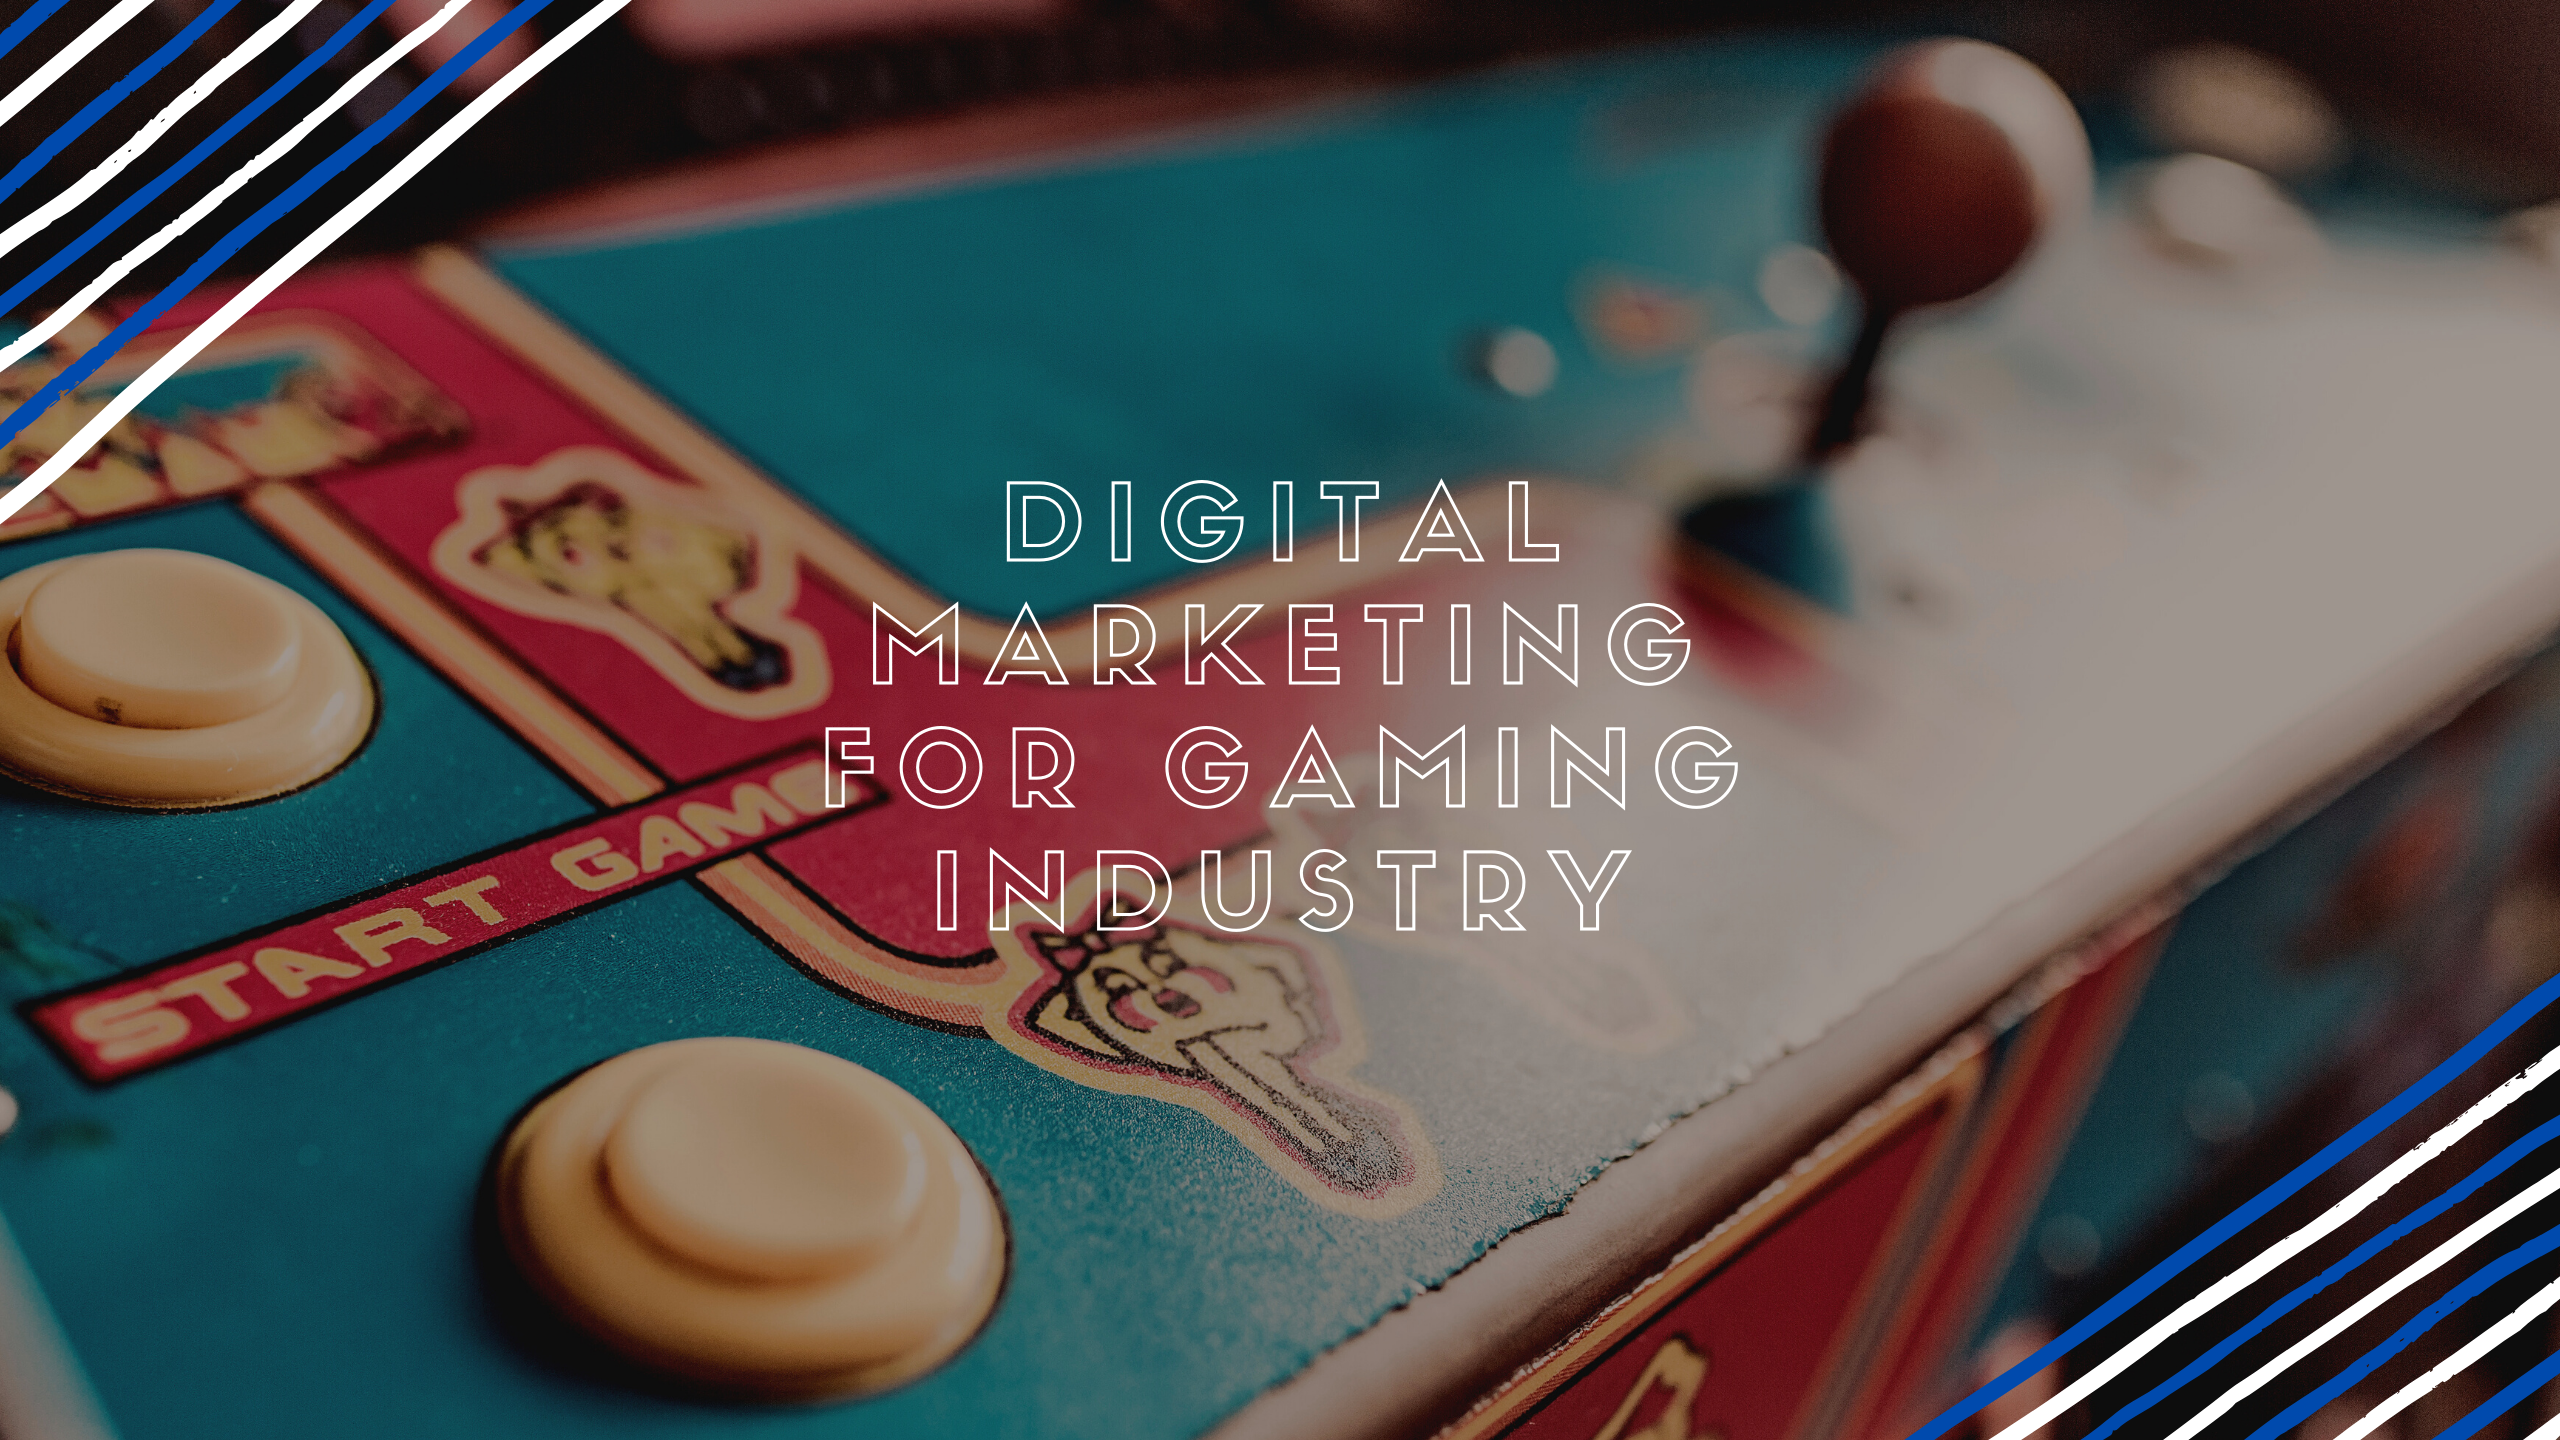 Digital Marketing for Gaming Industry